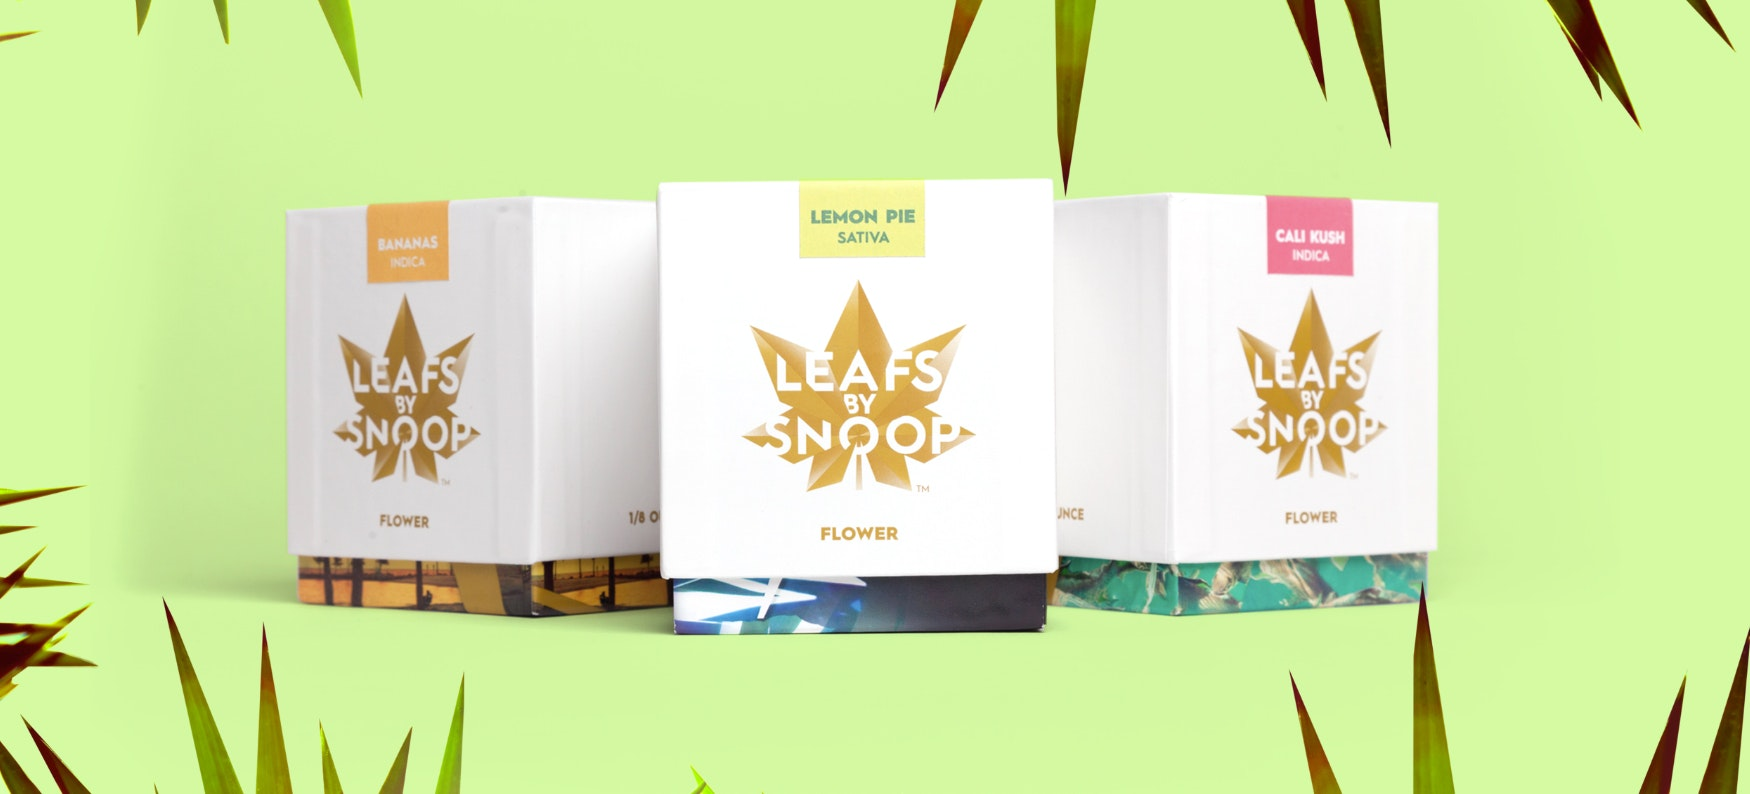 leafs by snoop branding logo packaging